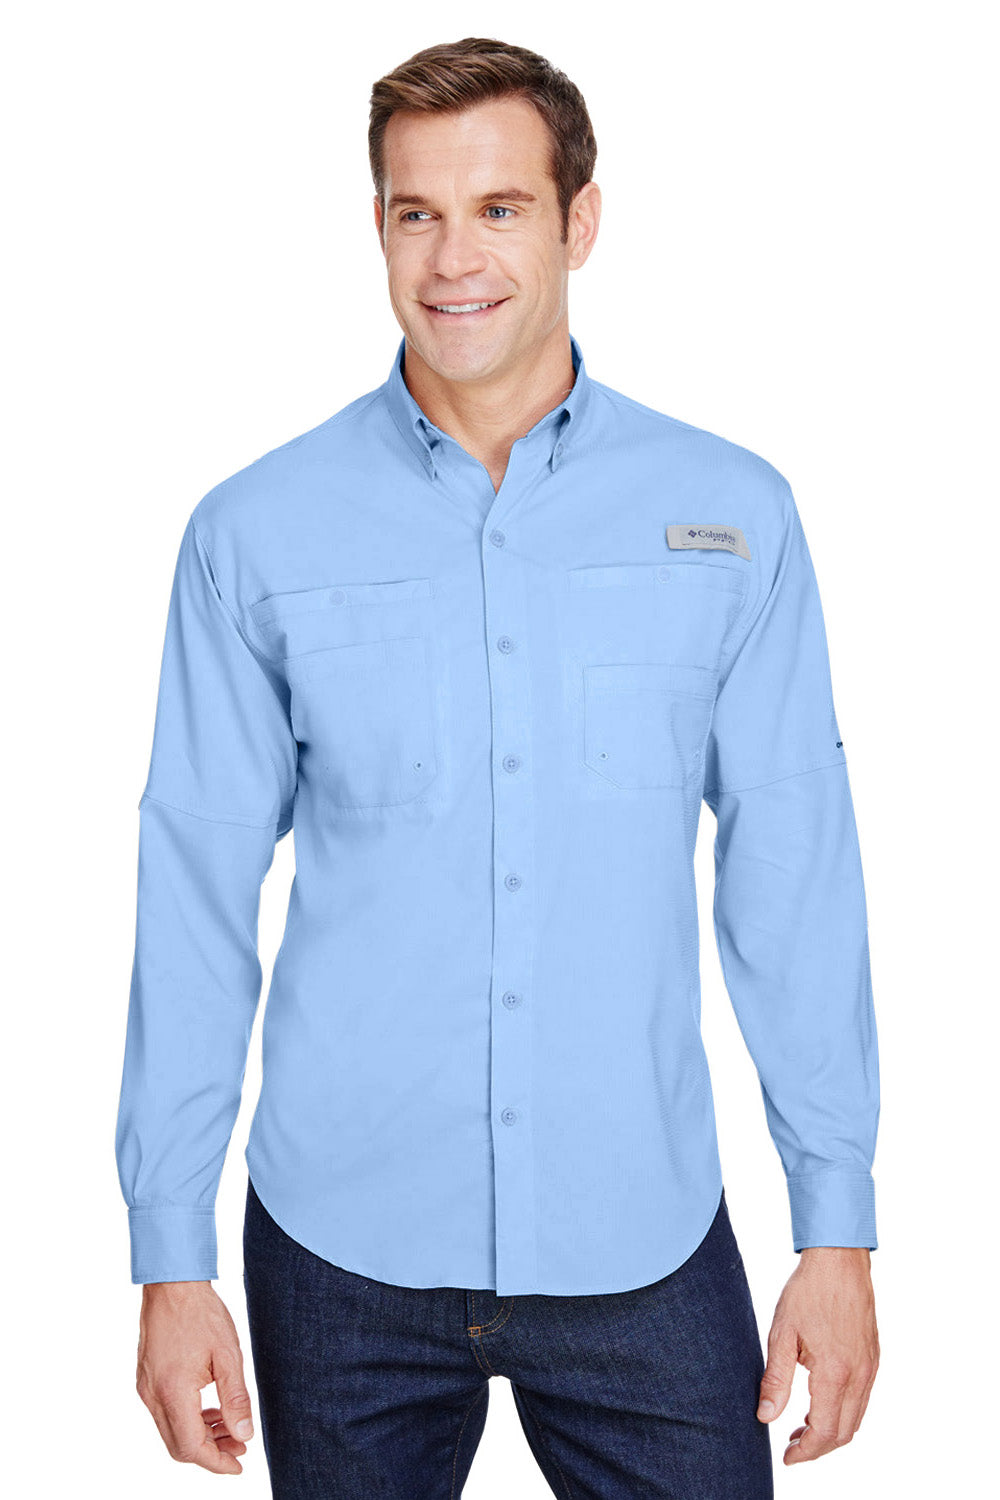 Columbia 7253 Mens Tamiami II Moisture Wicking Long Sleeve Button Down Shirt w/ Double Pockets Sail Blue Front